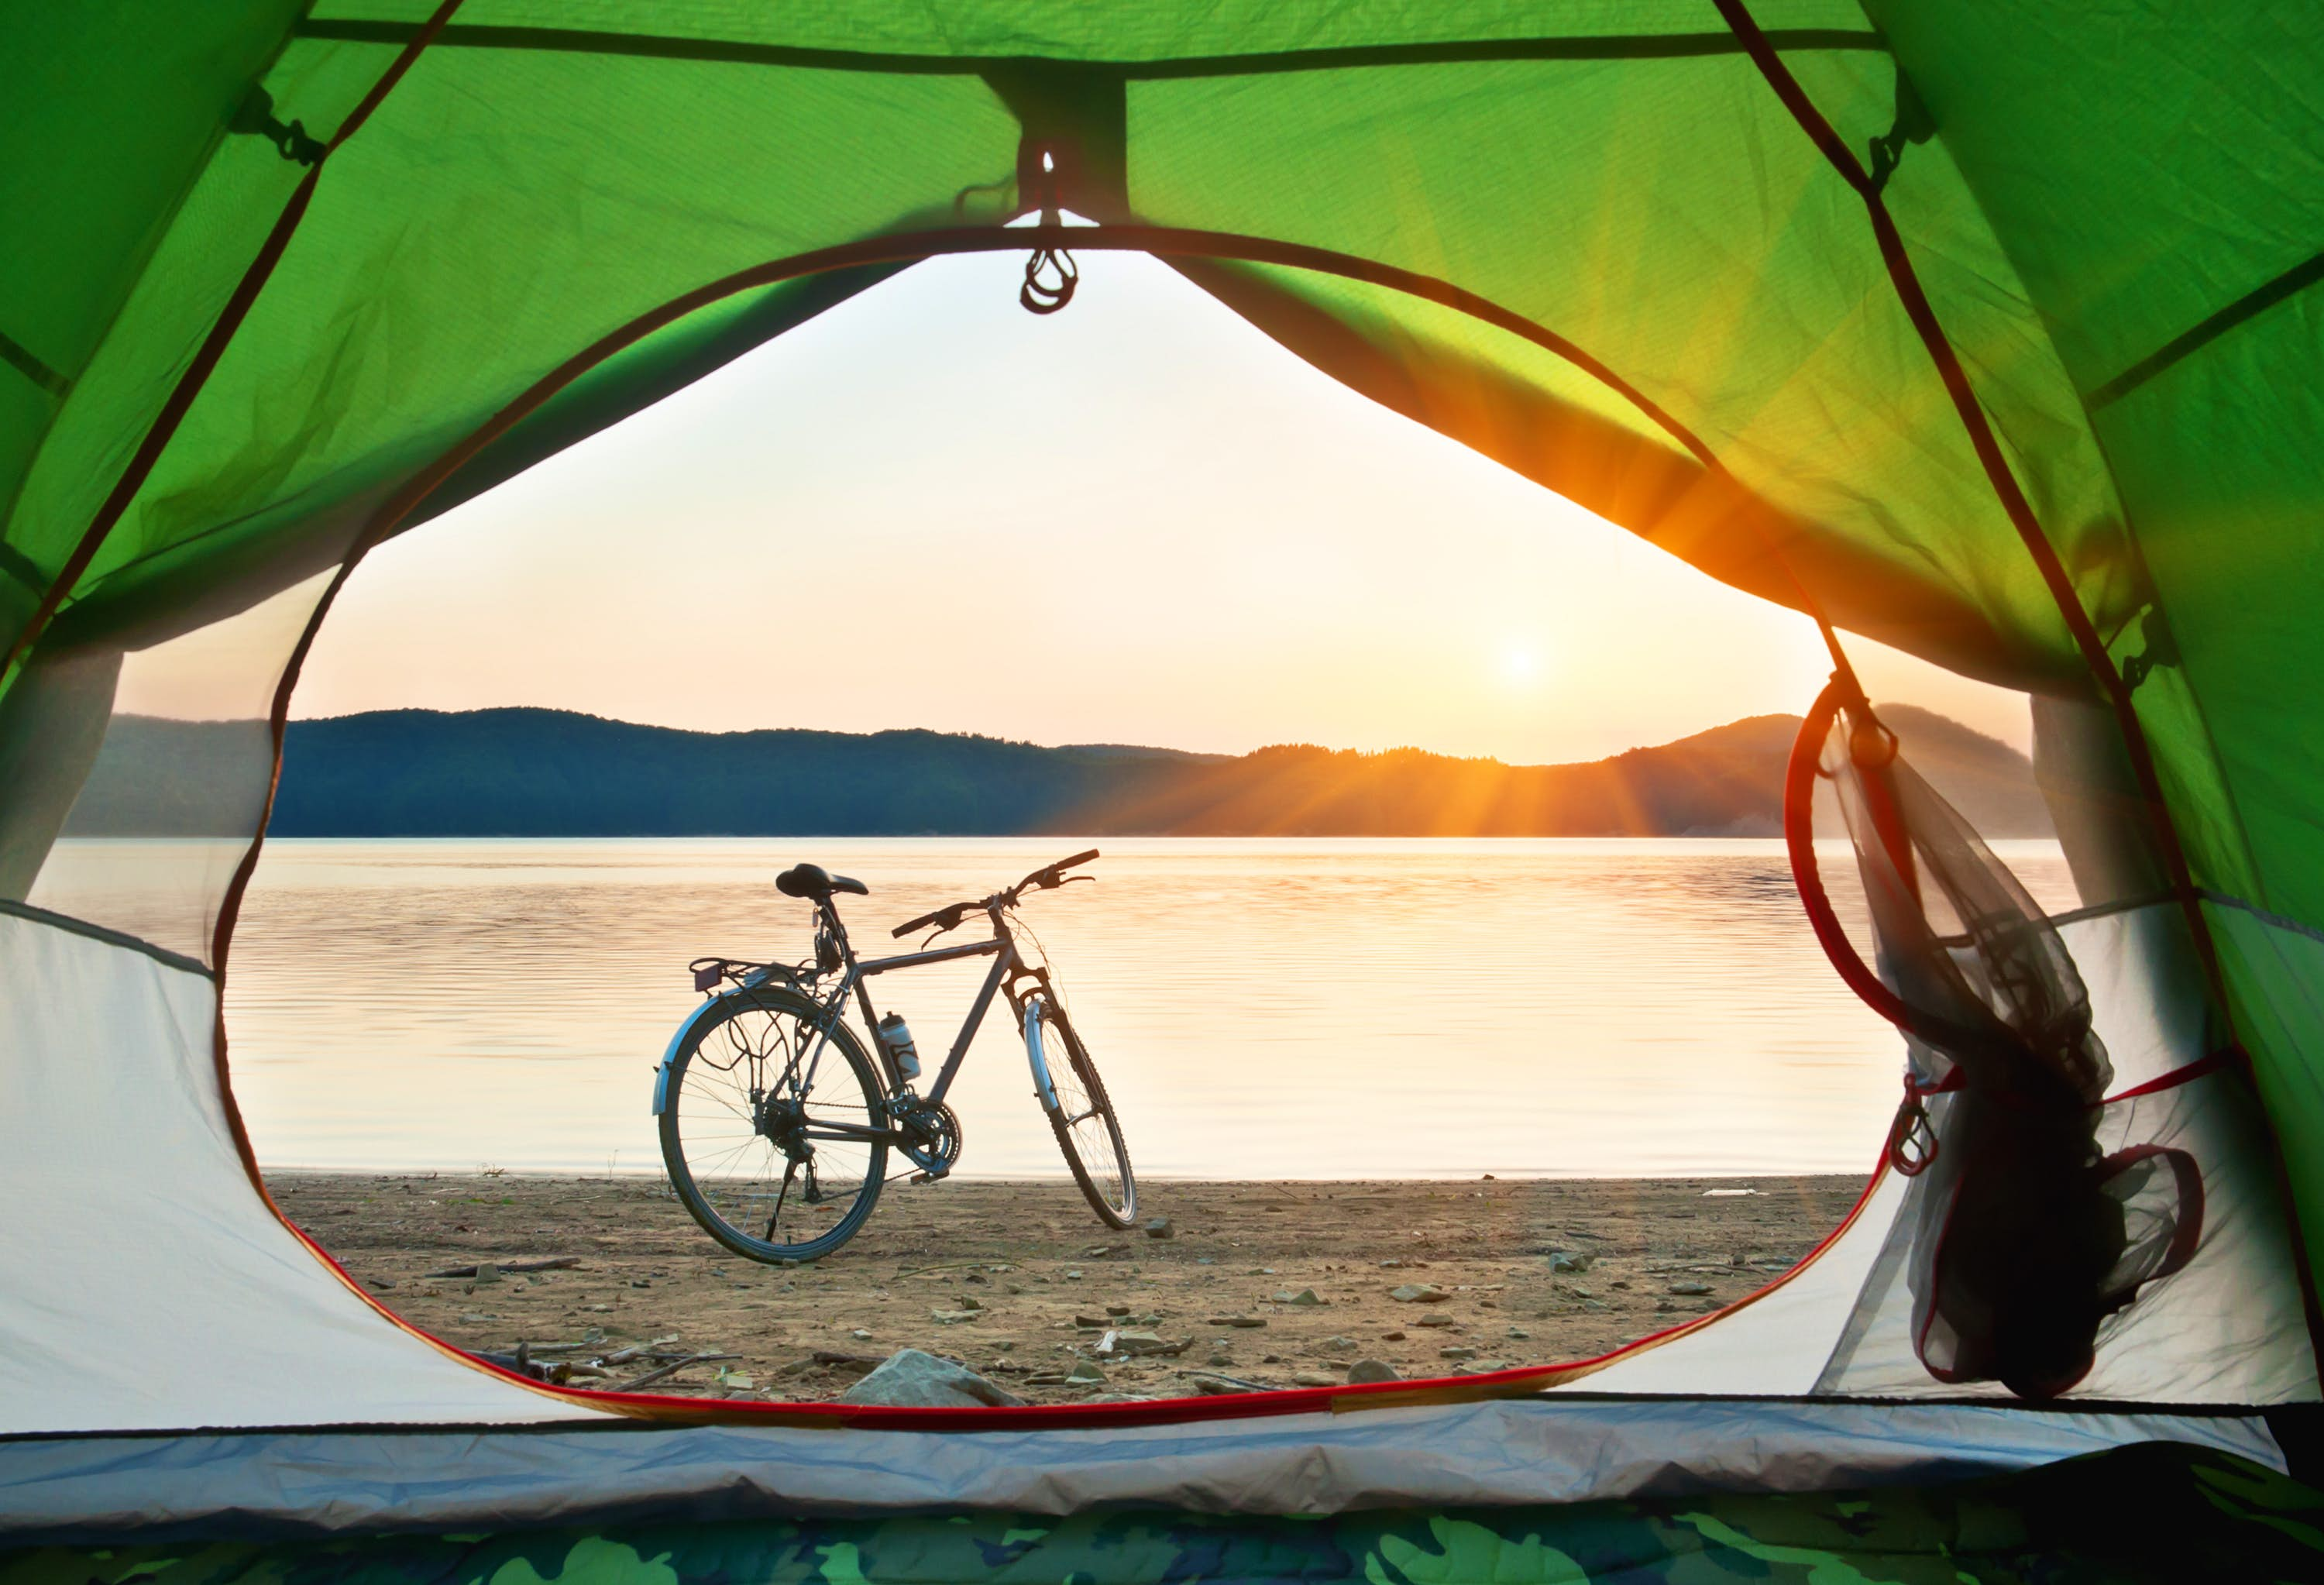 A bicycle on the shore of some water, viewed through the opening in a tent